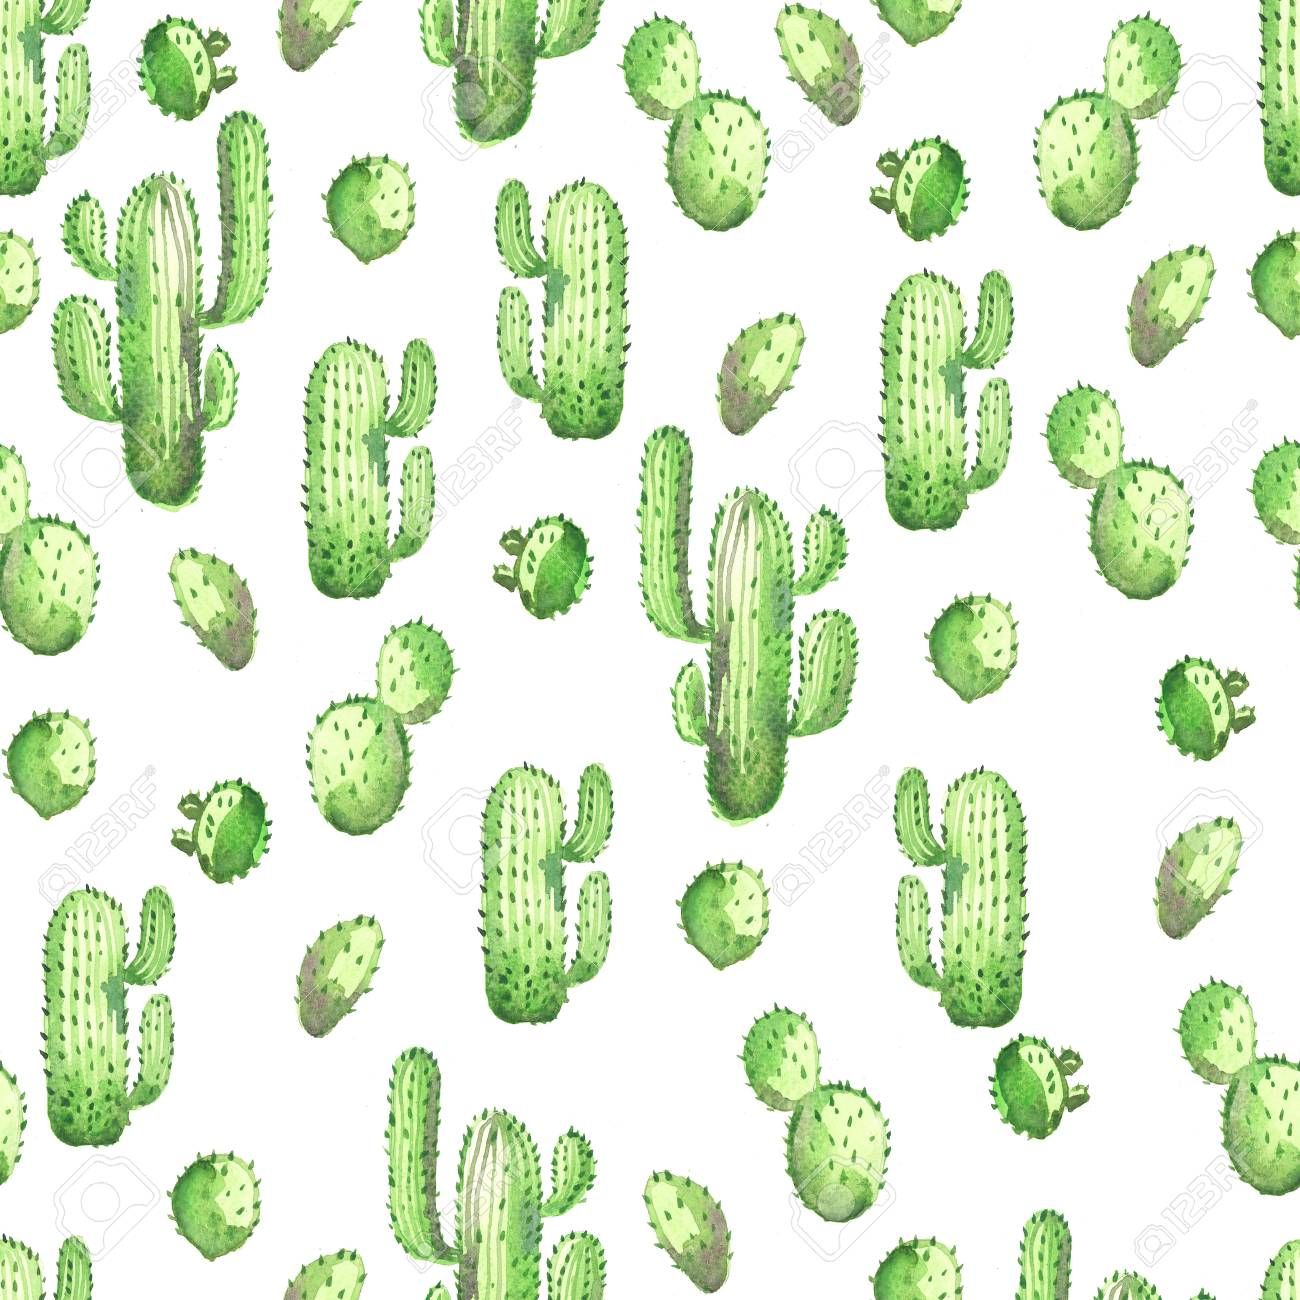 Watercolor Seamless Opuntia Cactus Pattern Background Stock Photo Picture And Royalty Free Image Image 104452713